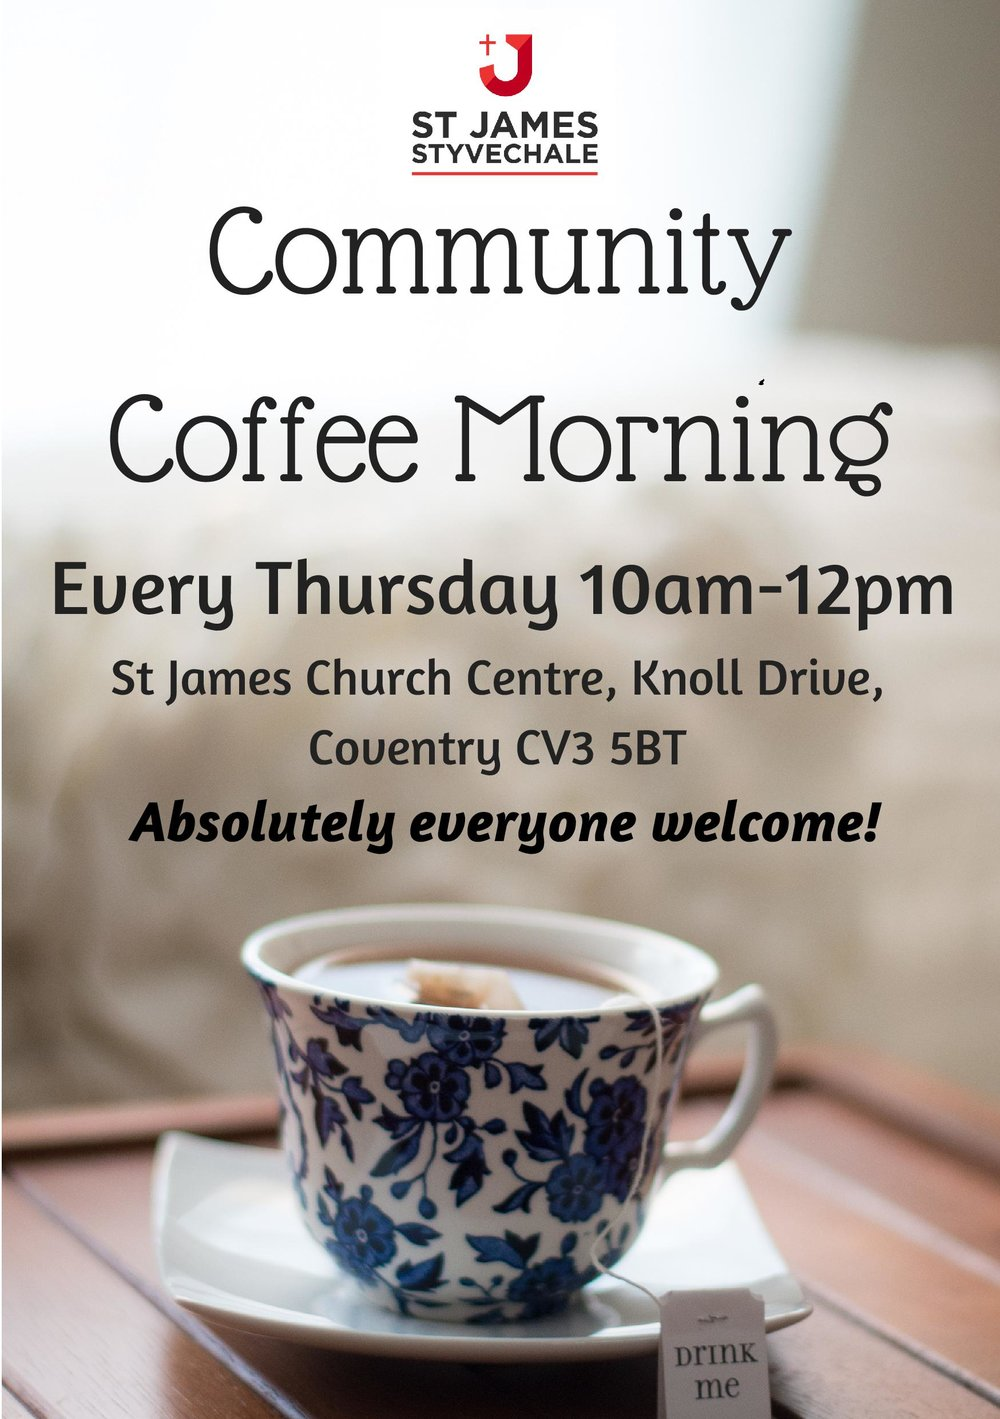 FINAL coffee morning flyer[6102]-page-001.jpg